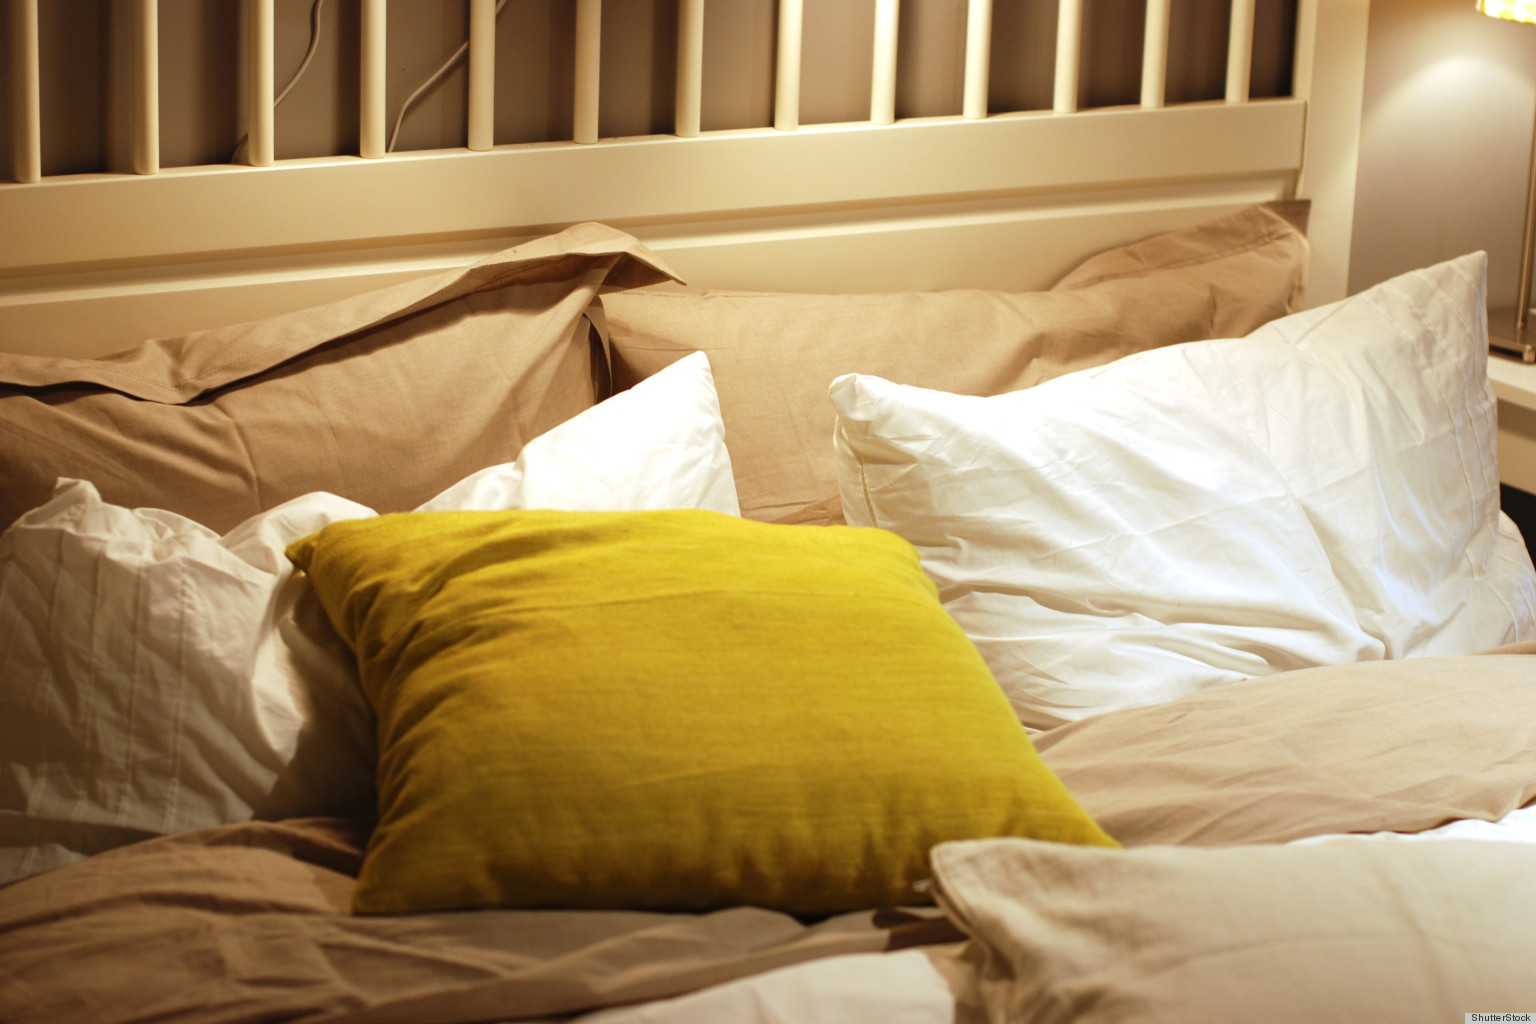 In Bedroom The 9 Most Stressful Things In Your Bedroomand How To Fix Them